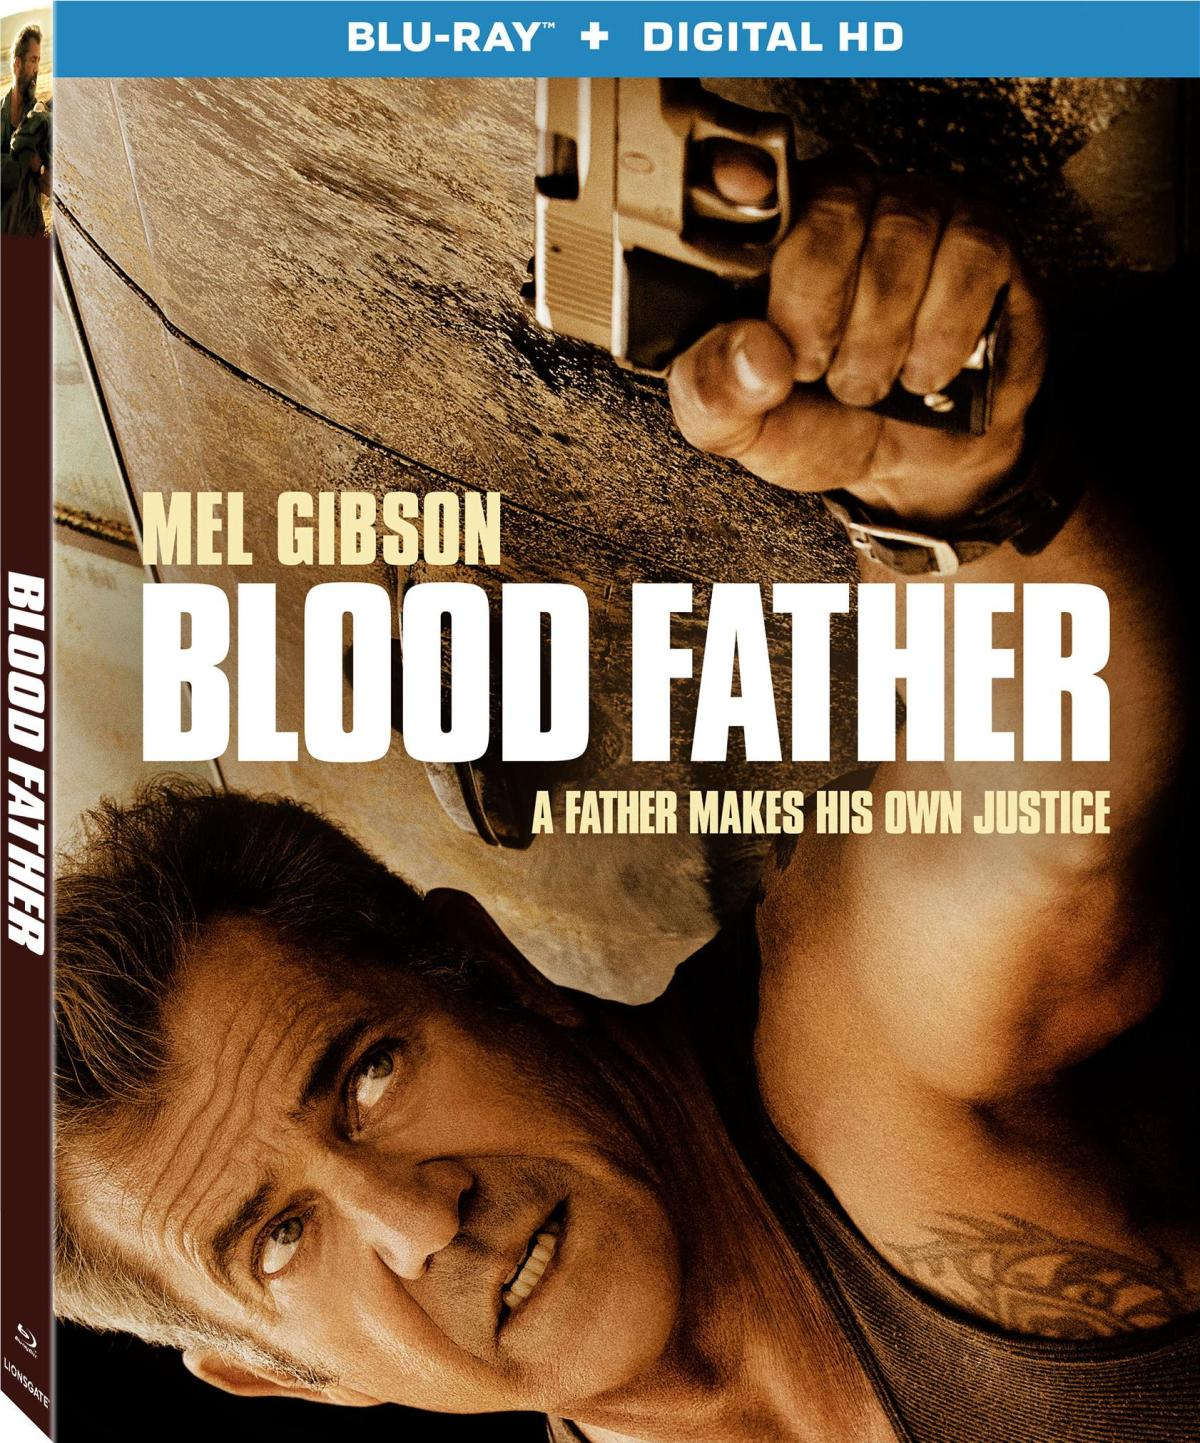 [GIVEAWAY] Win 'Blood Father' On Blu-ray: Available On Blu-ray & DVD October 11, 2016 From Lionsgate 20